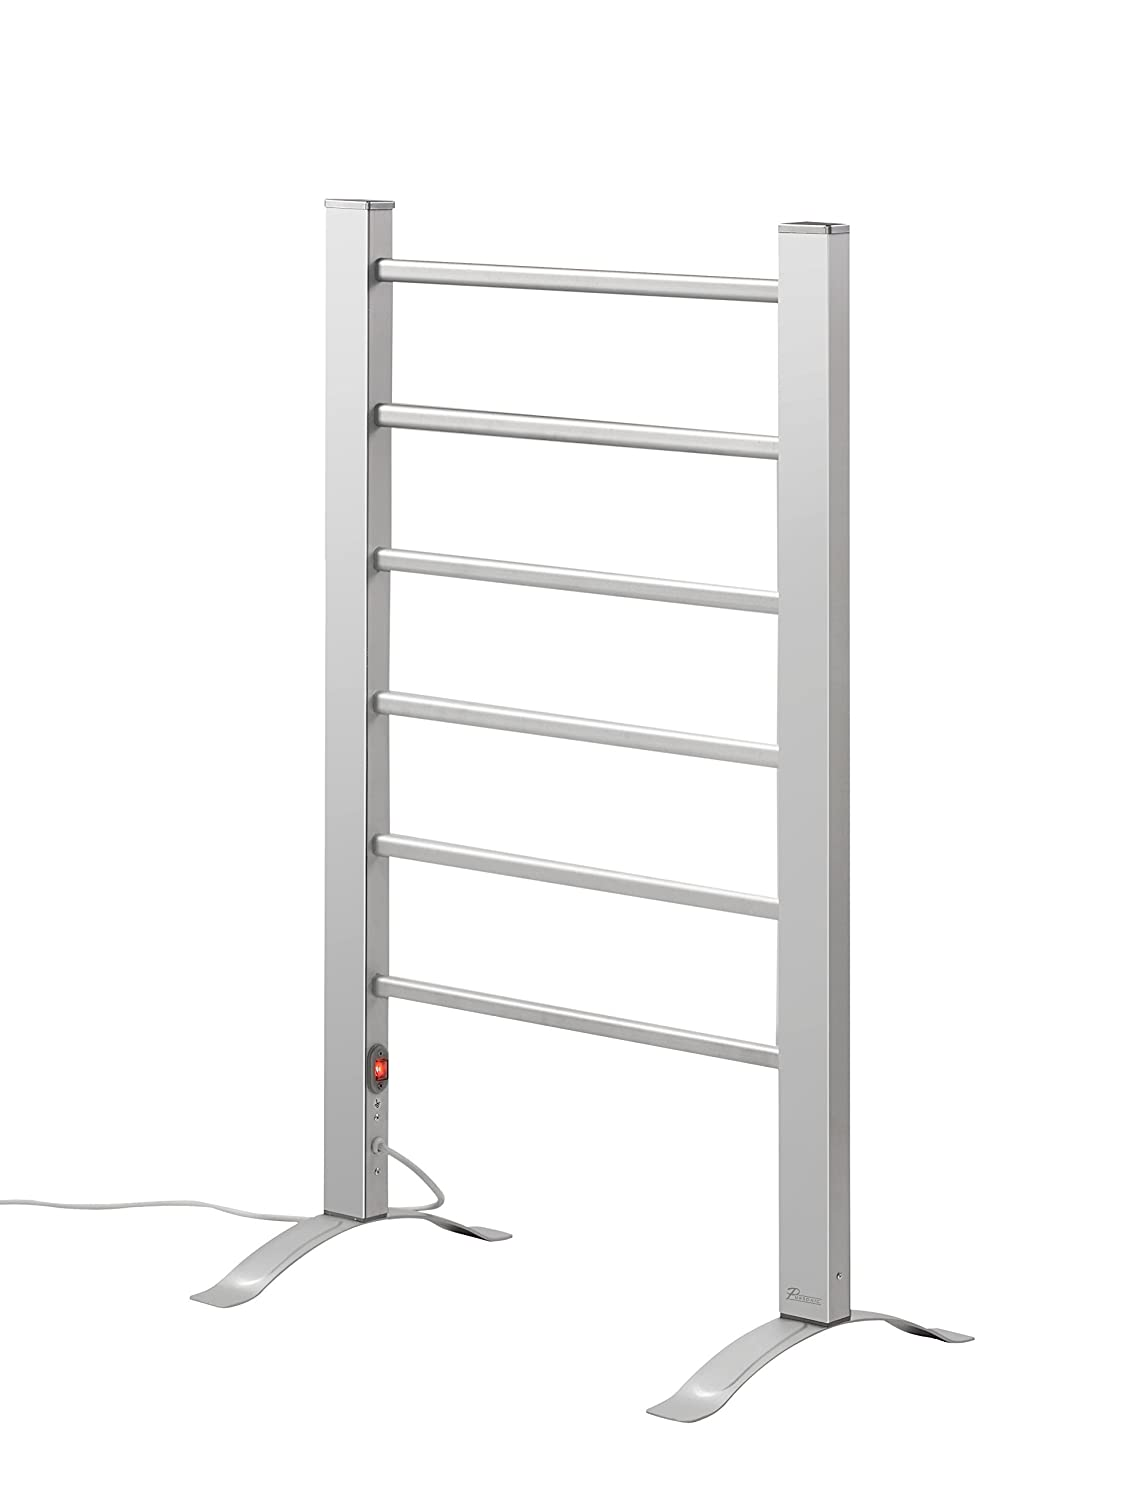 Pursonic TW300 6-Bar Freestanding or Wall Mountable Towel Warmer